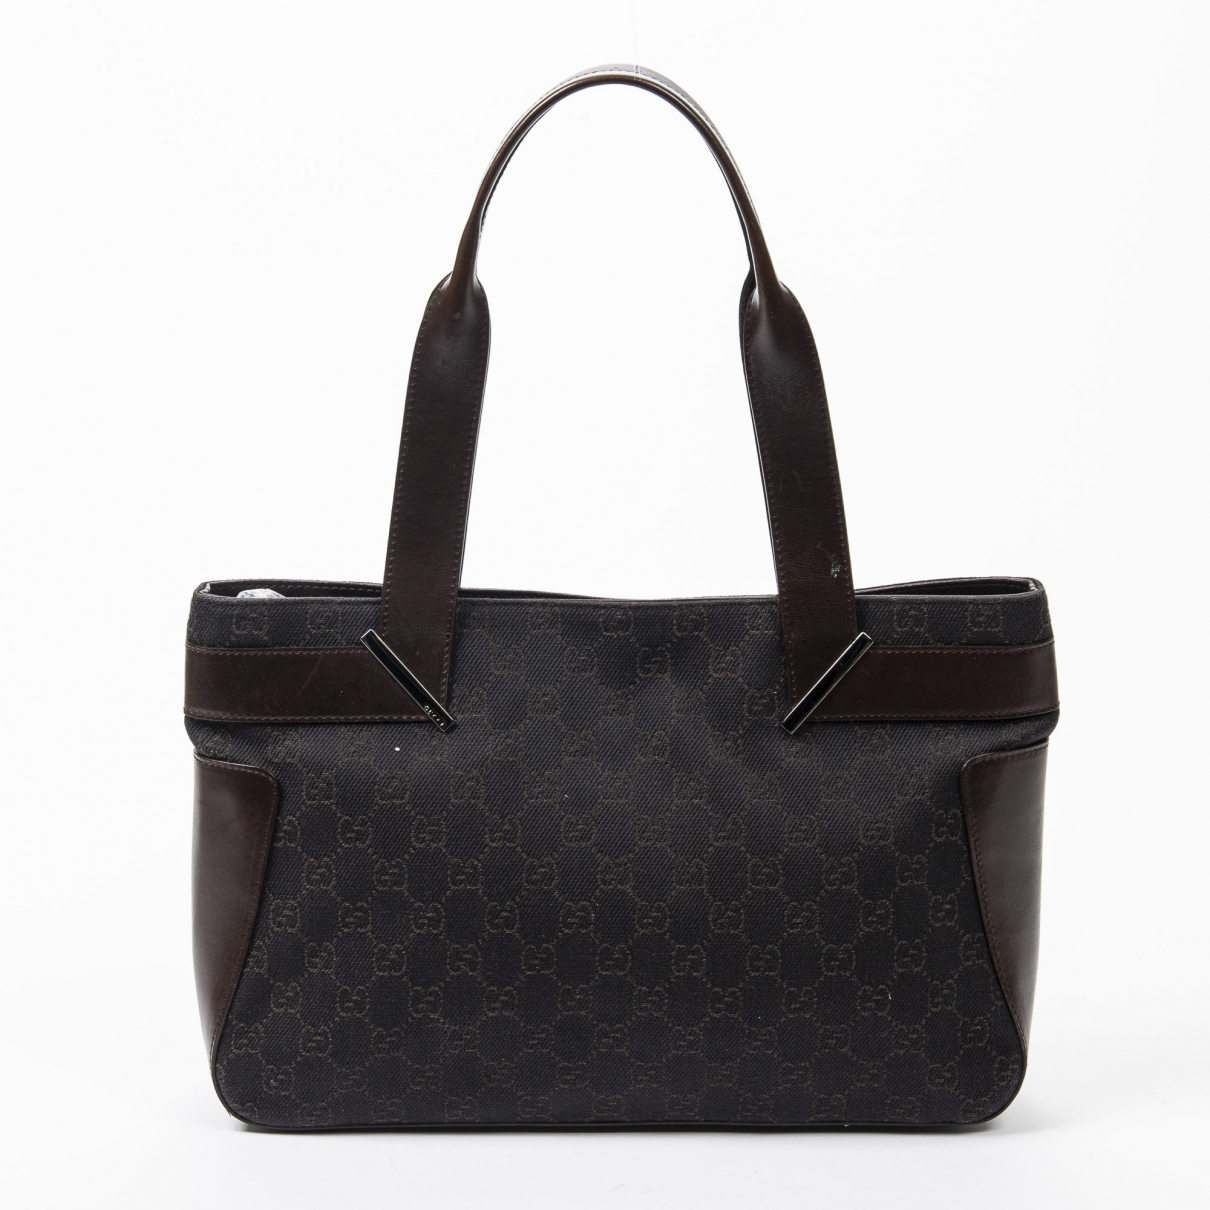 Gucci \N Brown Denim - Jeans handbag for Women \N